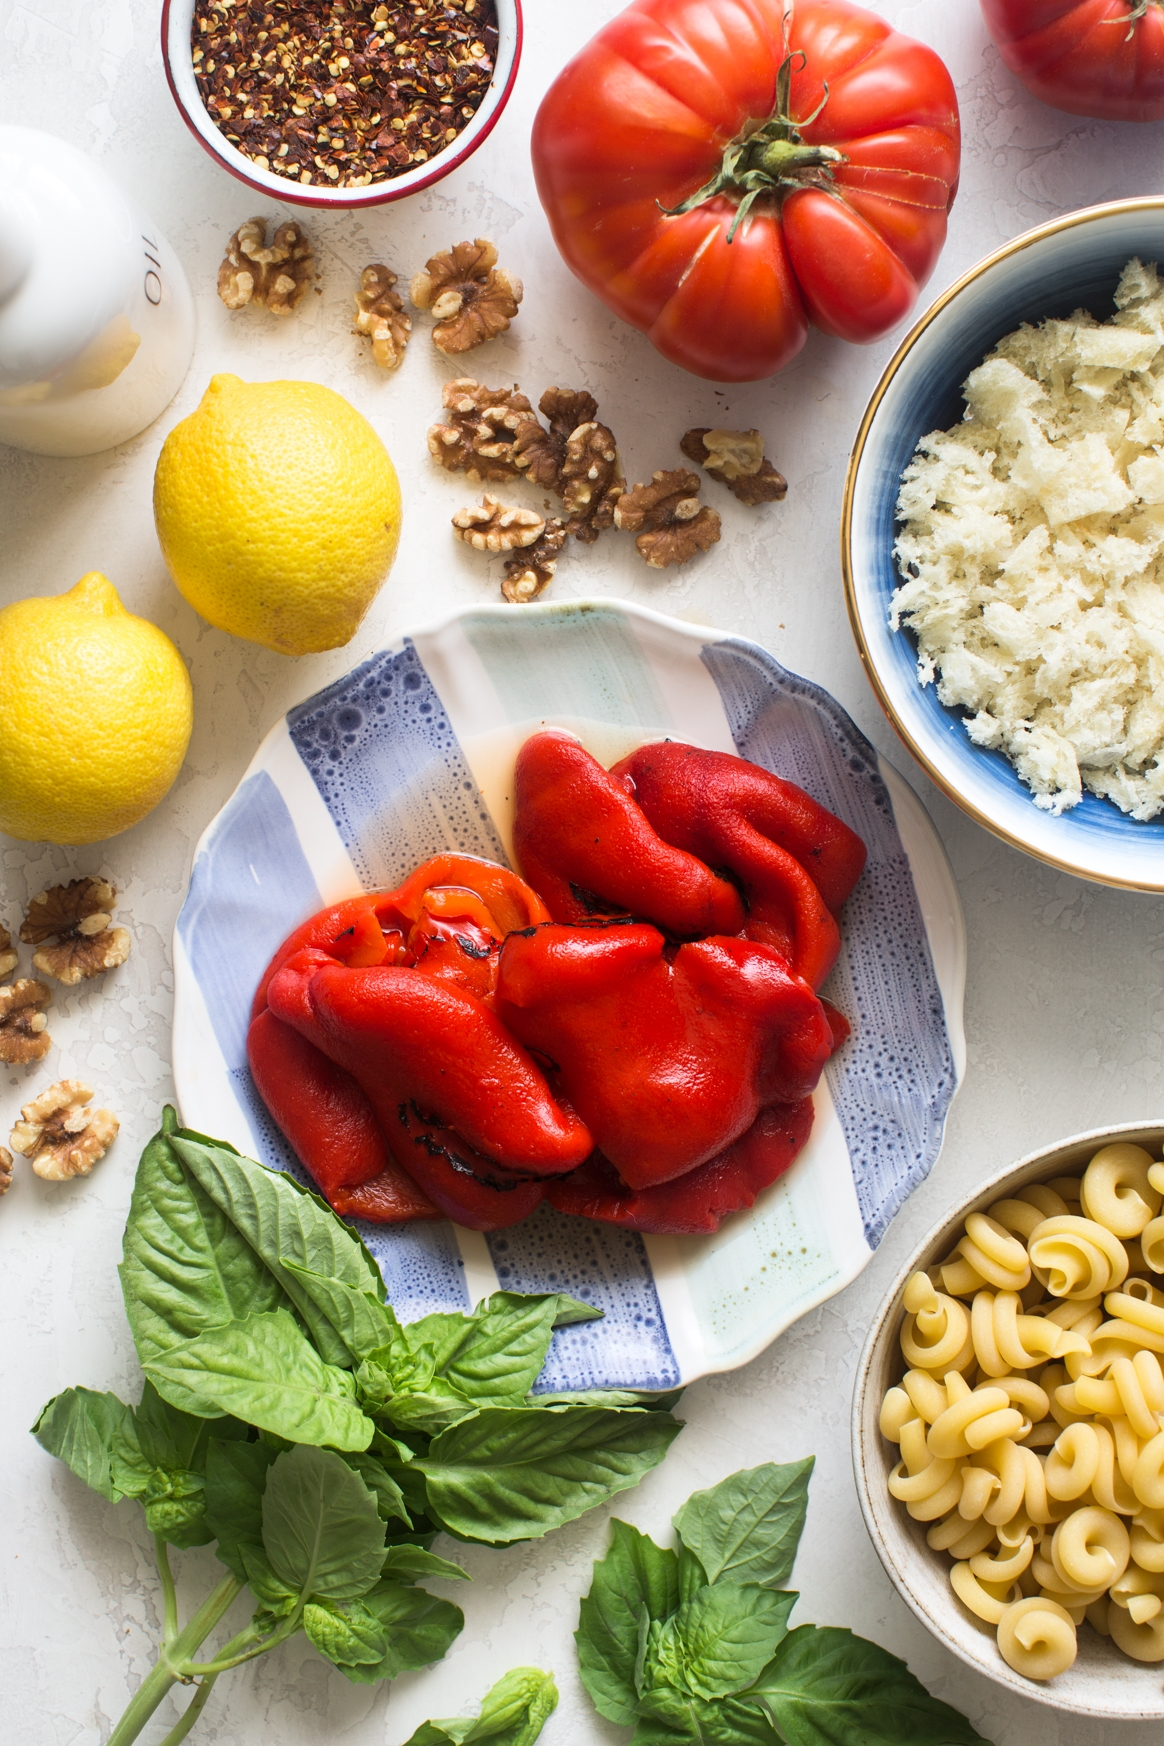 Roasted Red Pepper Pasta Salad Ingredients